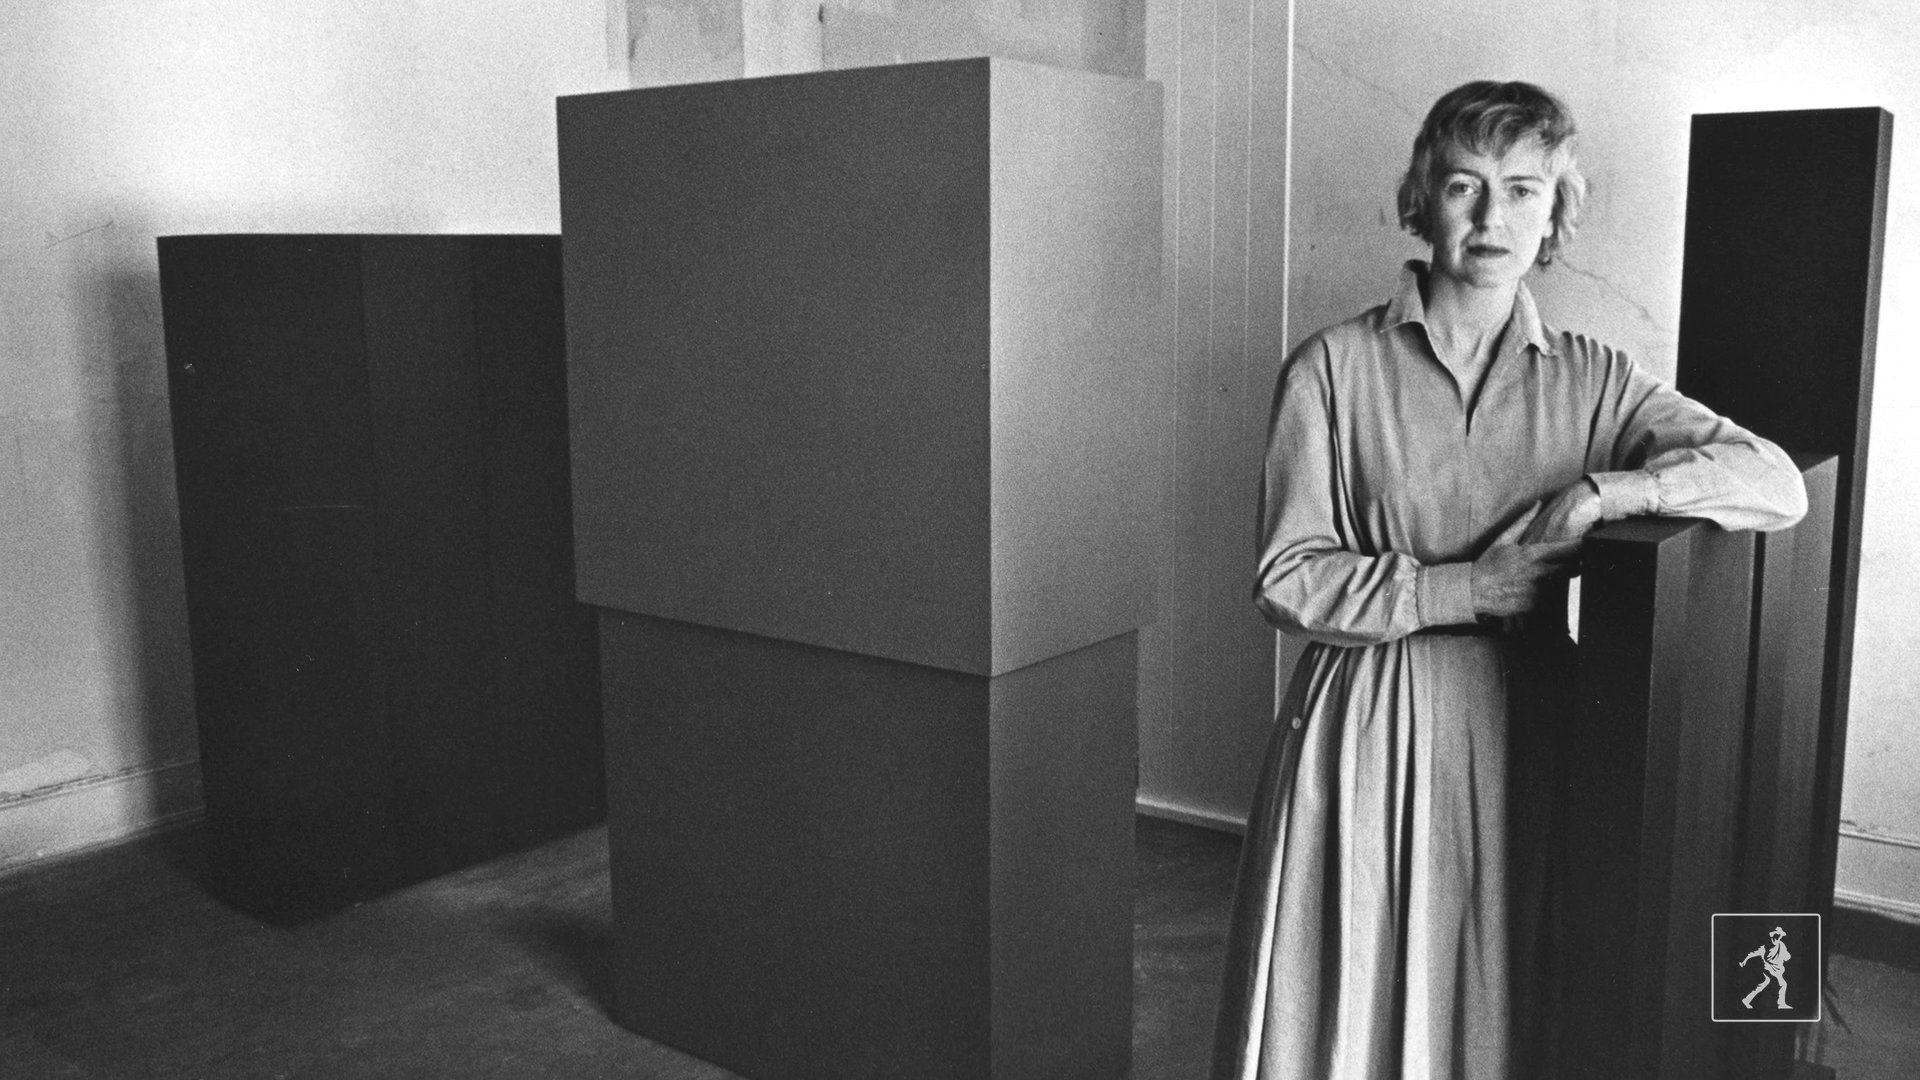 Artist Anne Truitt on Her Work